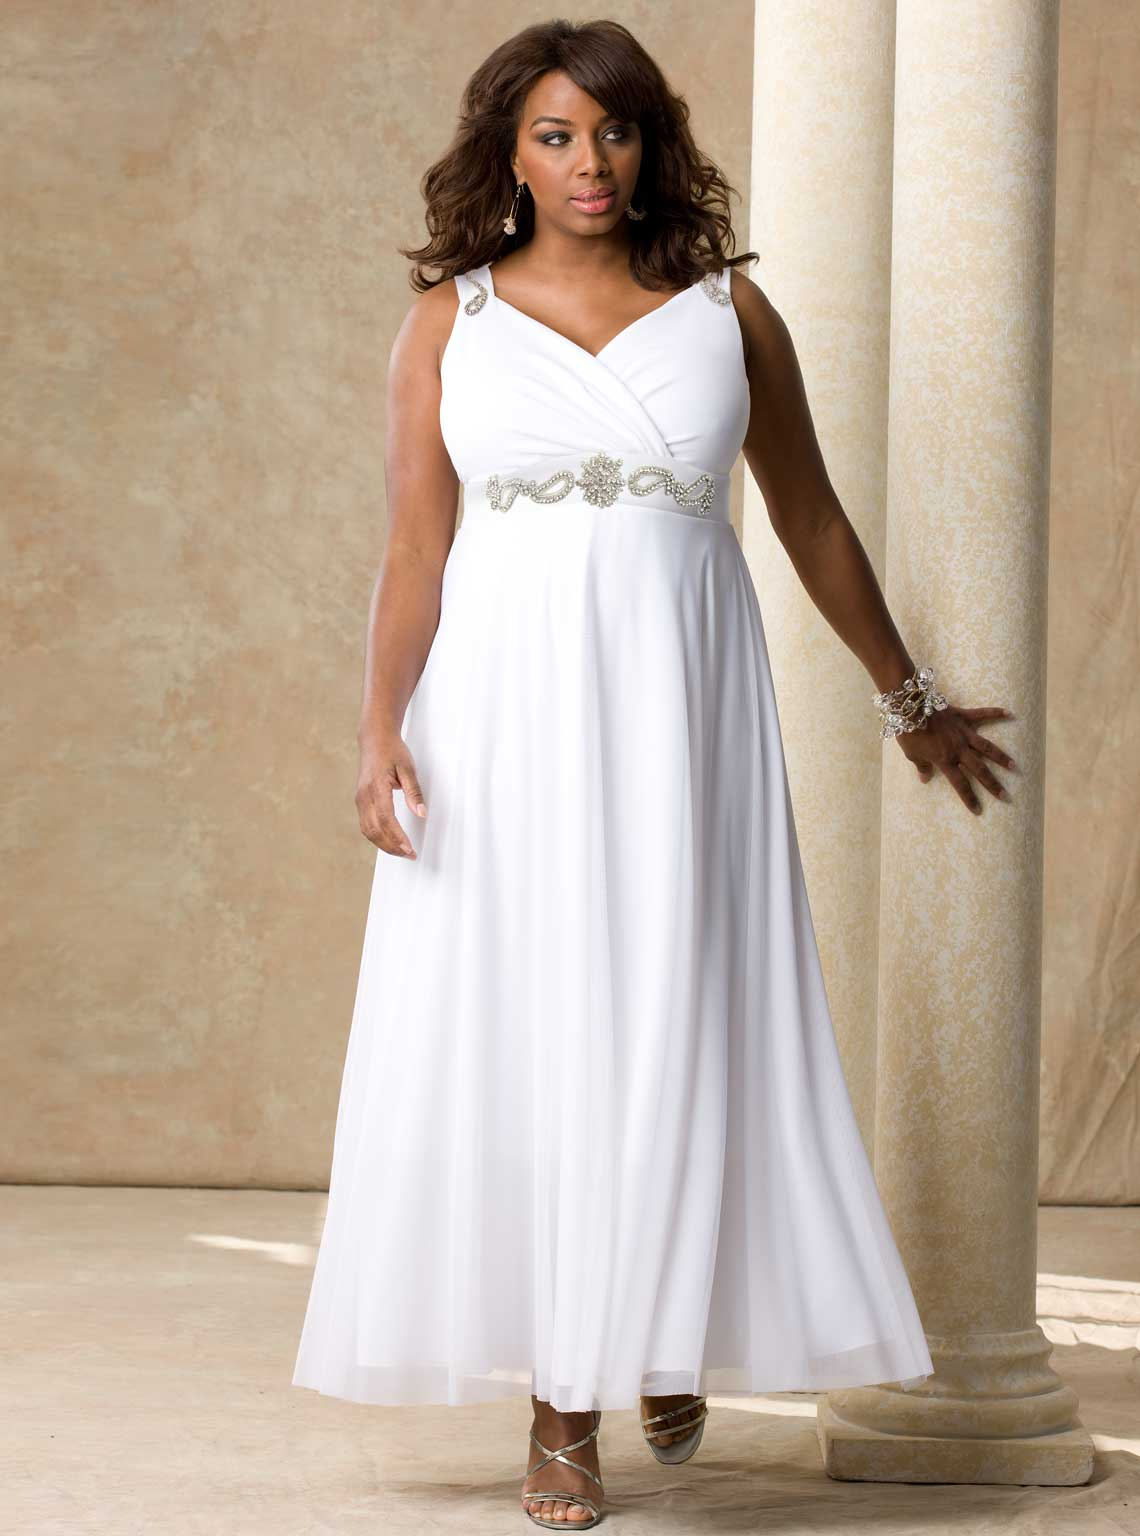 Best wedding ideas searching for an affordable plus size for Wedding dress big size